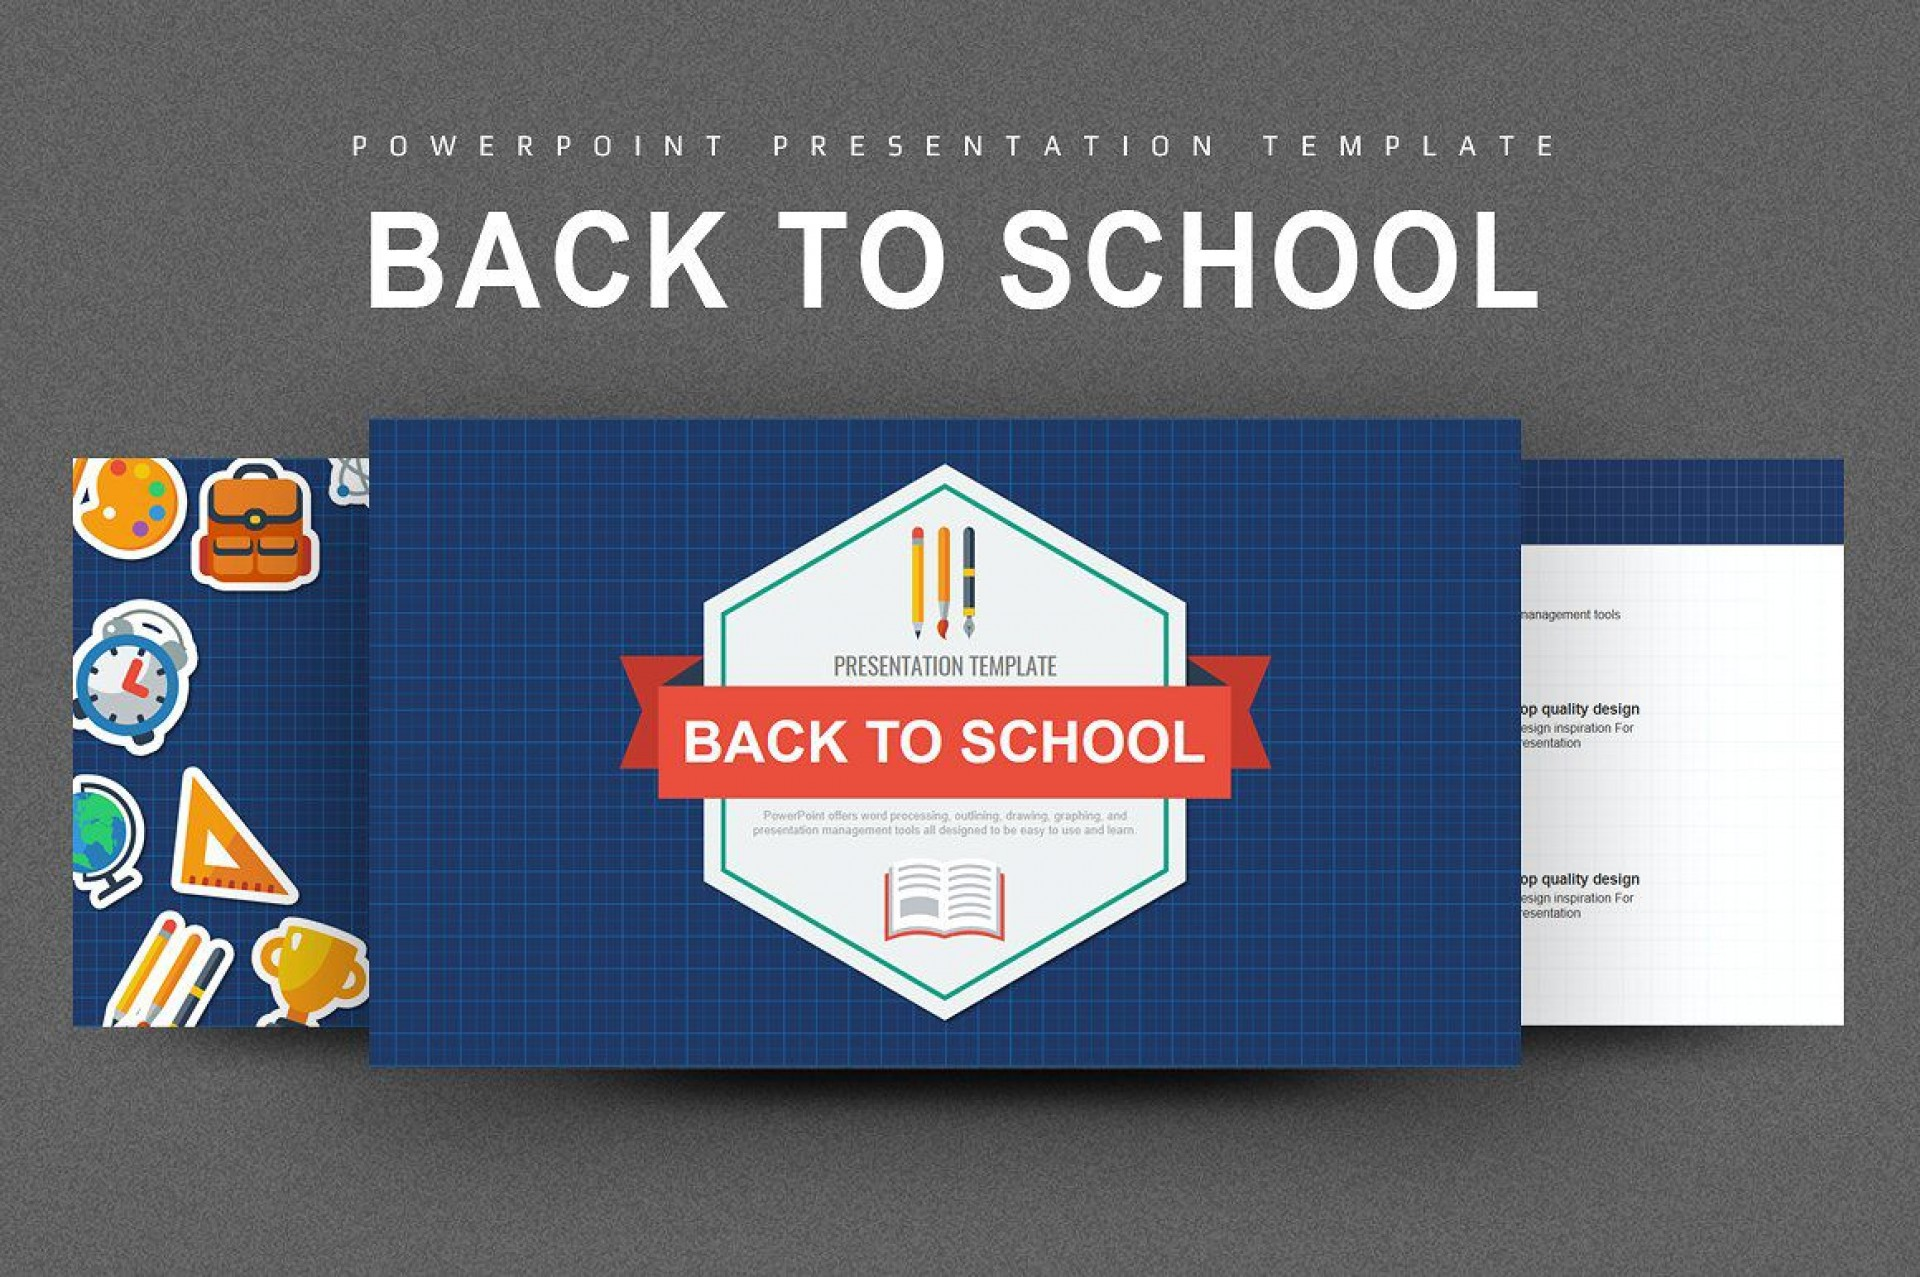 005 Sensational Free Education Powerpoint Template High Resolution  Templates Physical Download Downloadable For Teacher Design1920